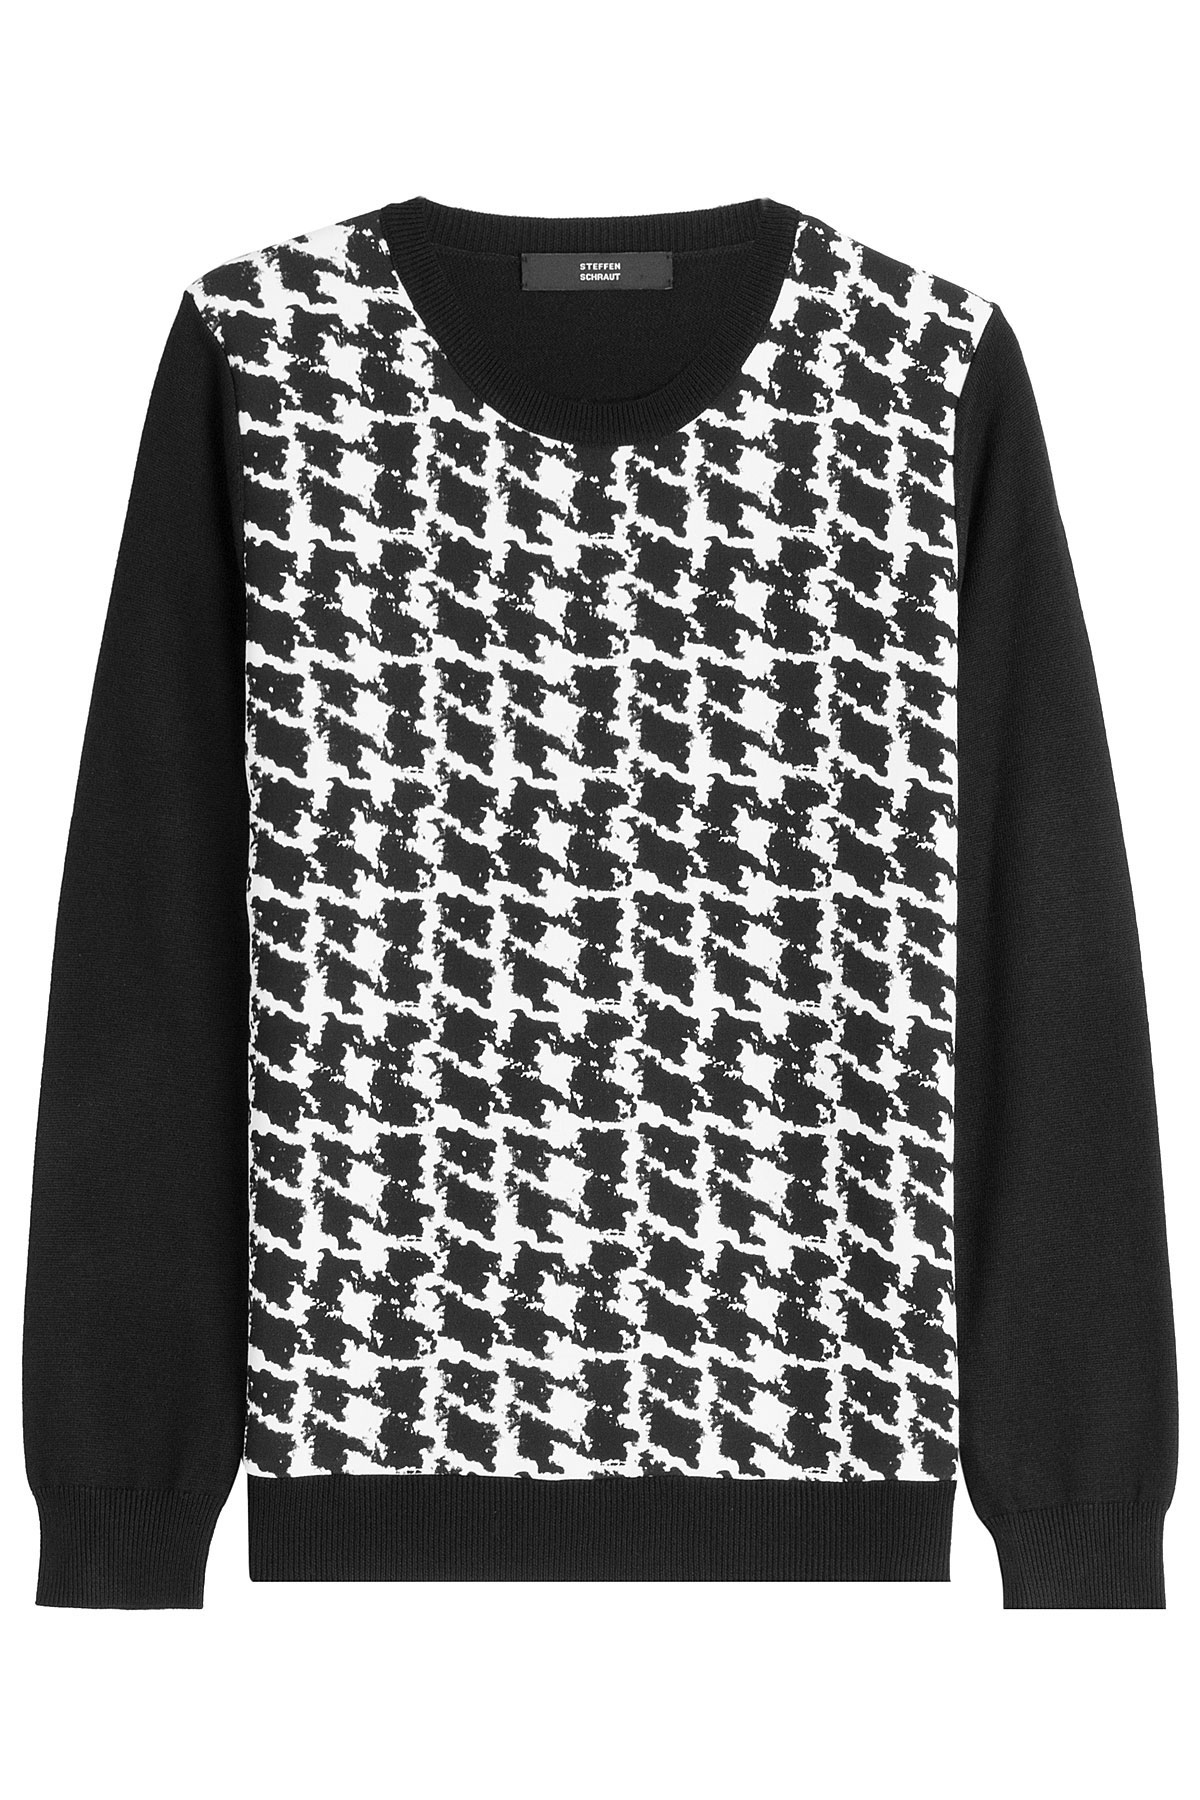 steffen schraut printed knit pullover black in black lyst. Black Bedroom Furniture Sets. Home Design Ideas